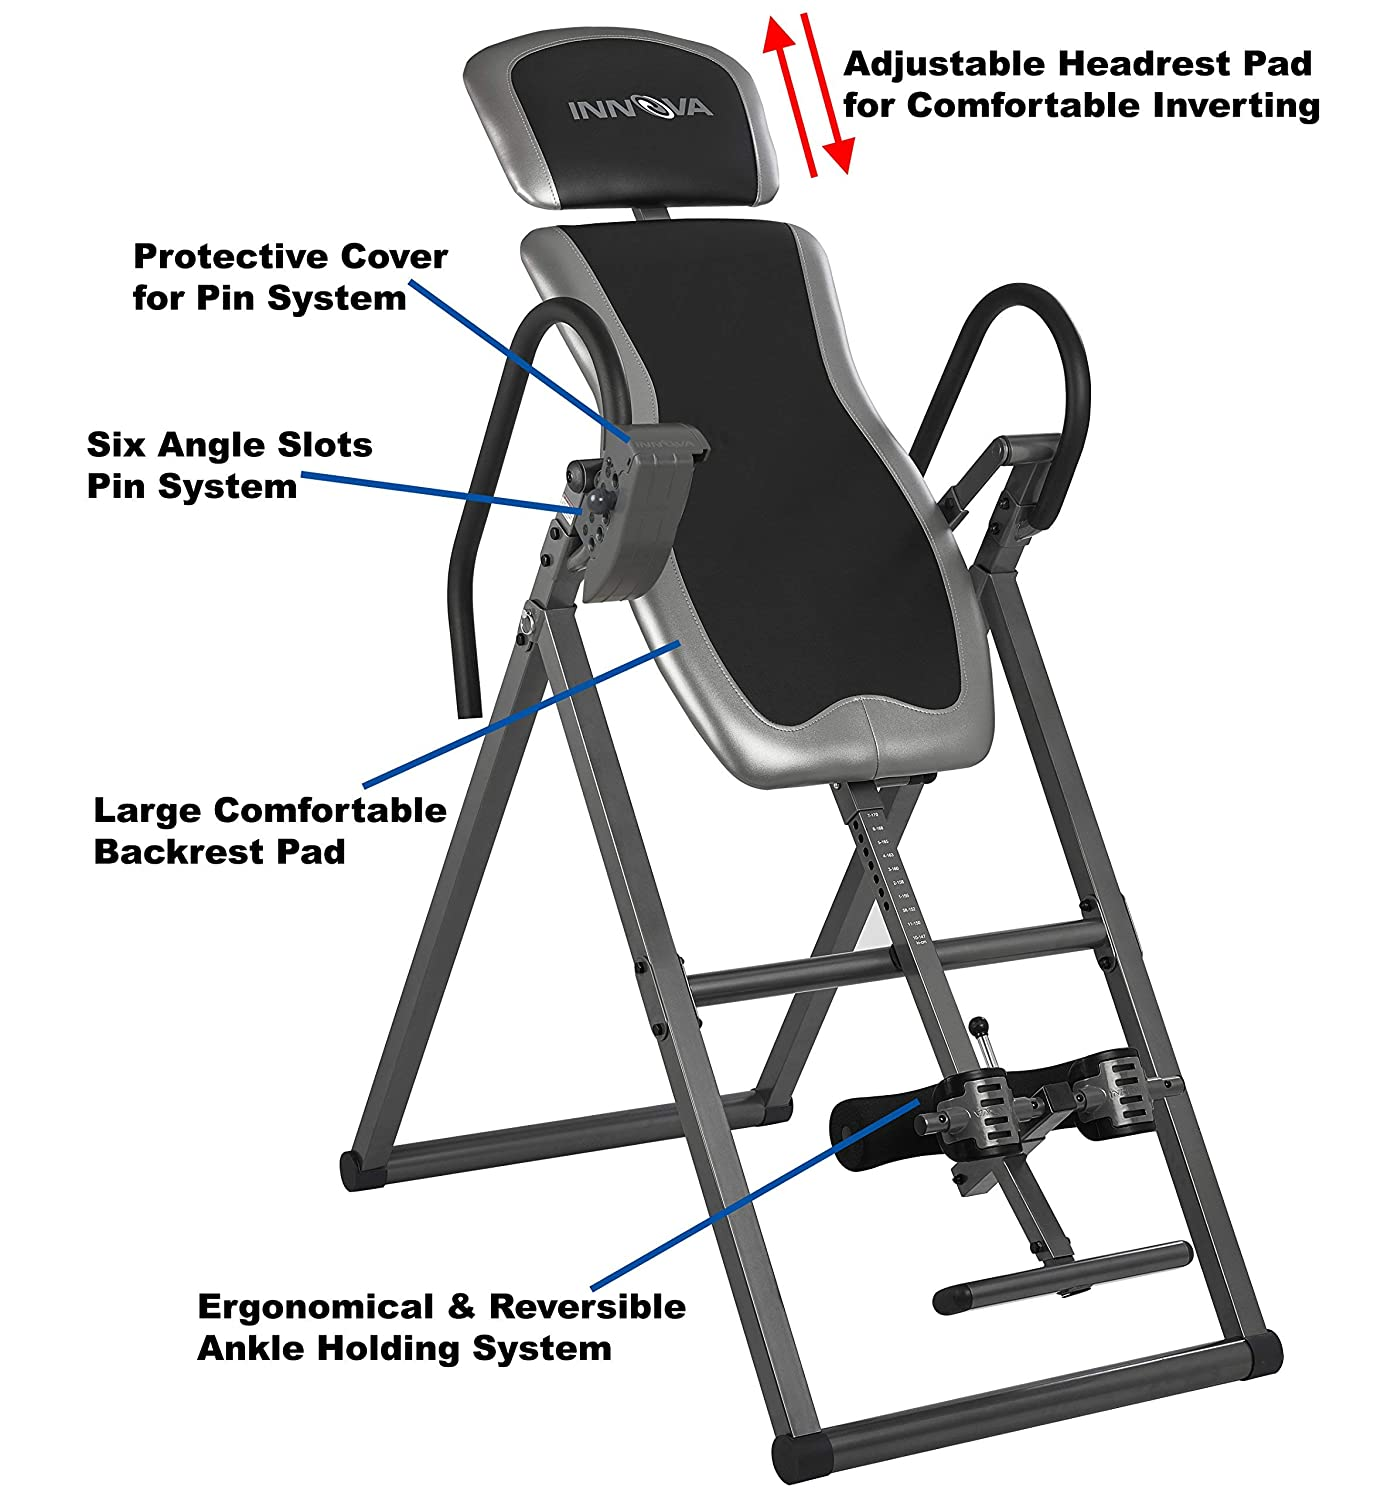 Innova ITX9600 Heavy Duty Inversion Table with Adjustable Headrest Protective Cover Renewed